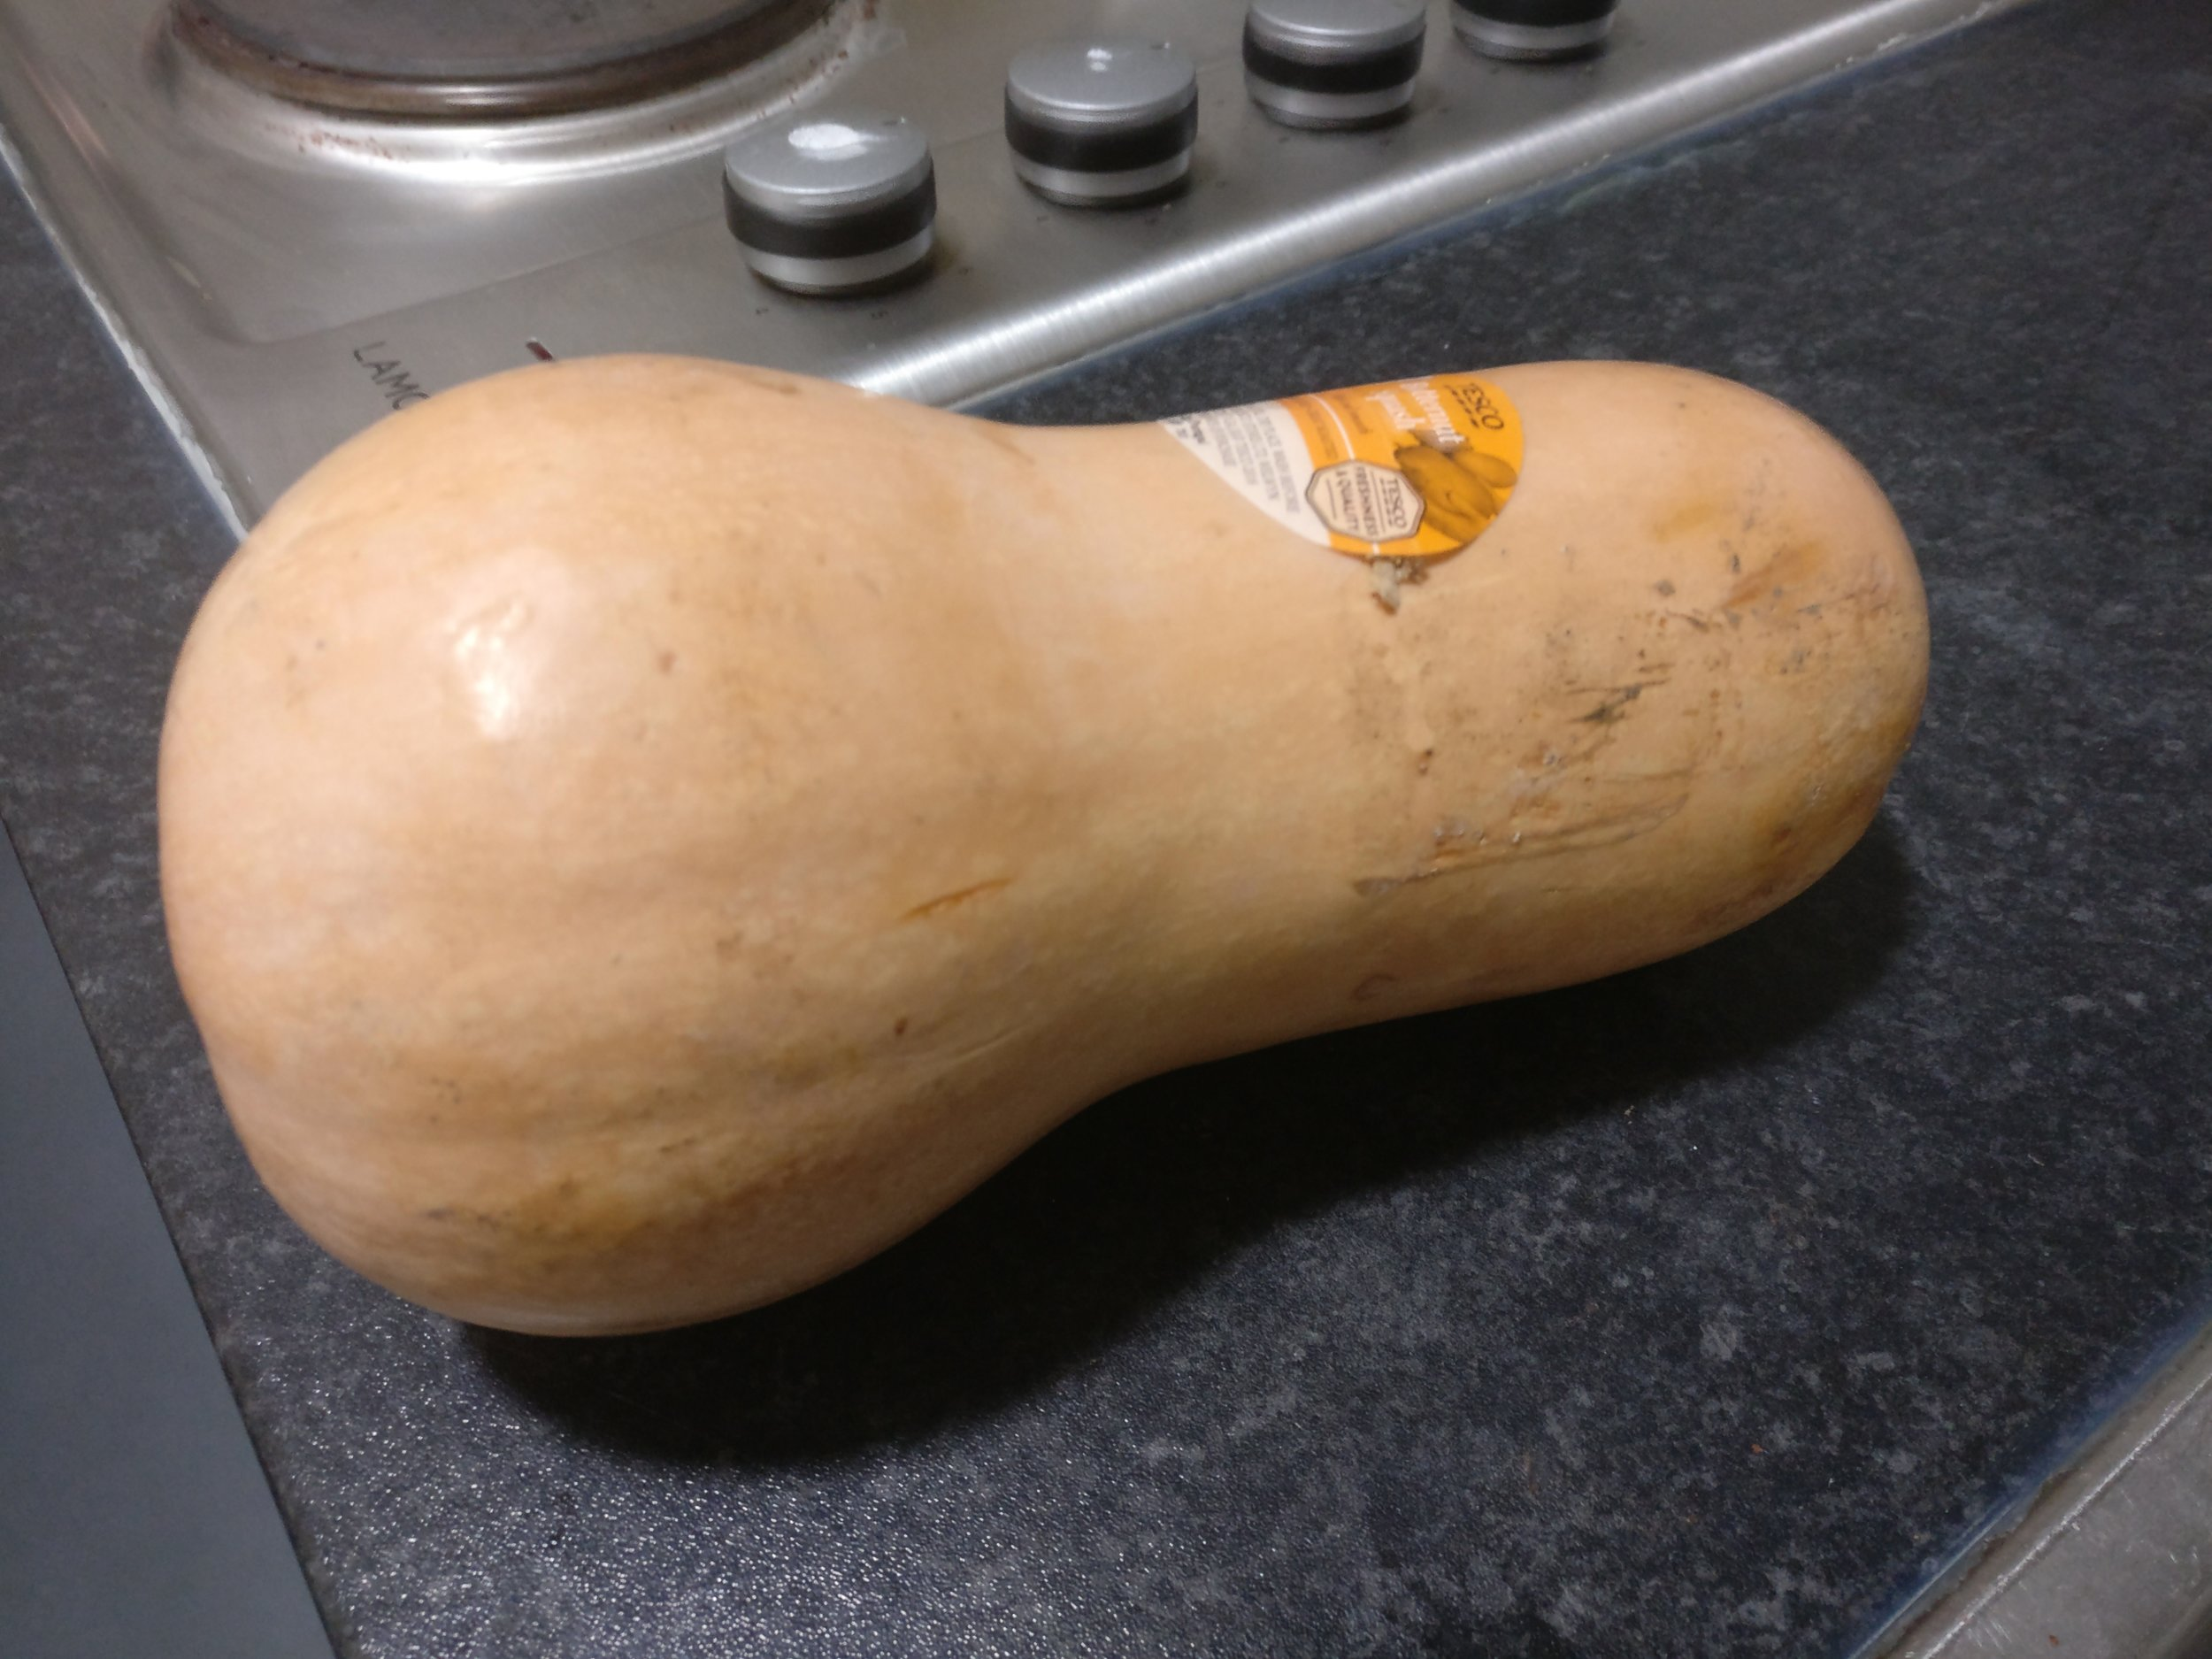 Enjoy this squash, because it's literally the only thing that happened today